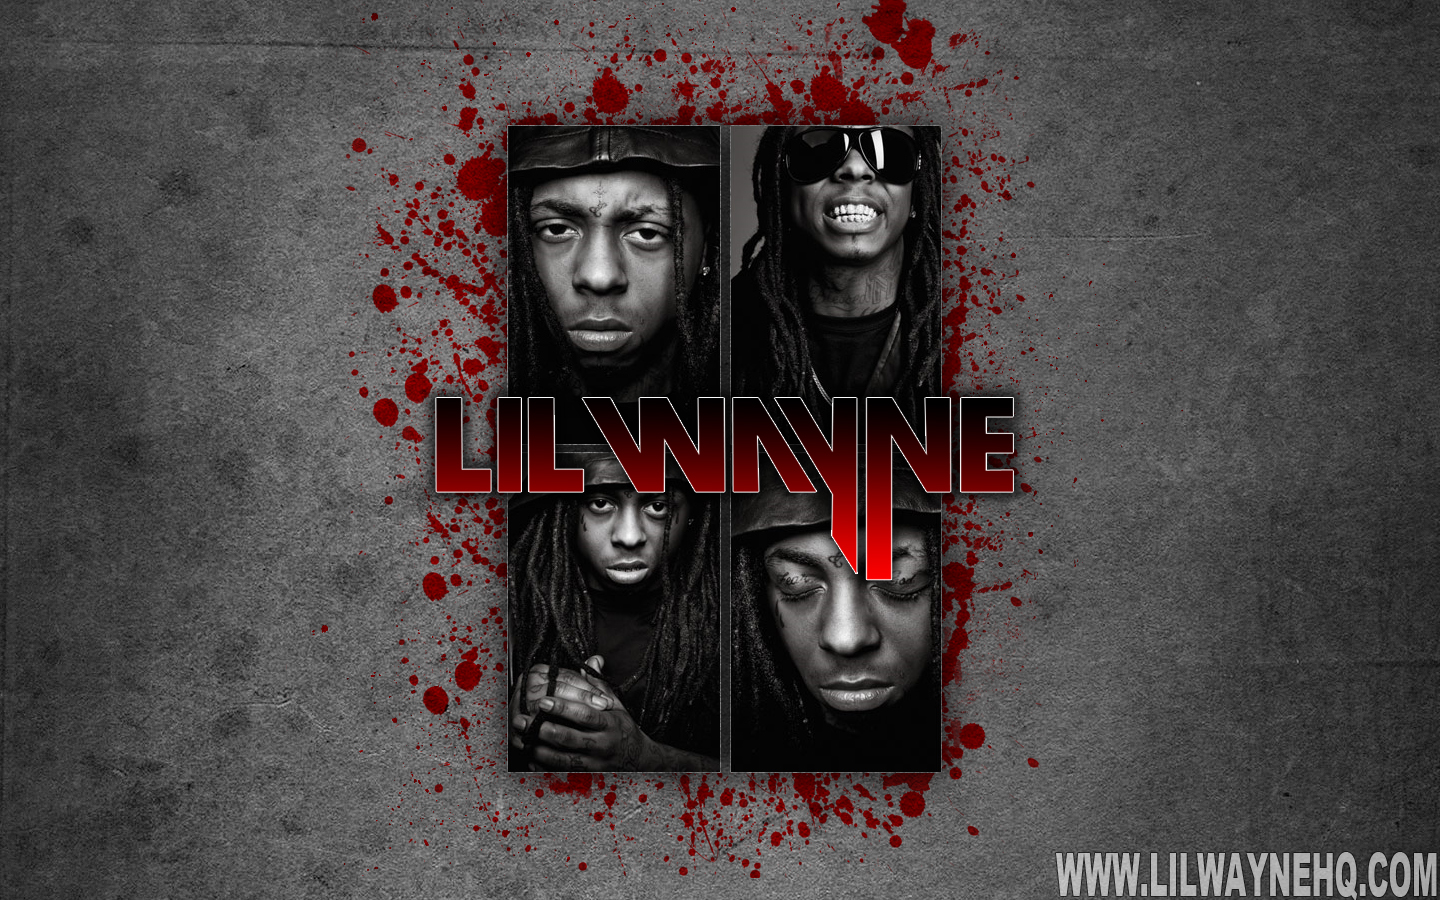 lil wayne graphics - avatars, wallpapers, gifs & more